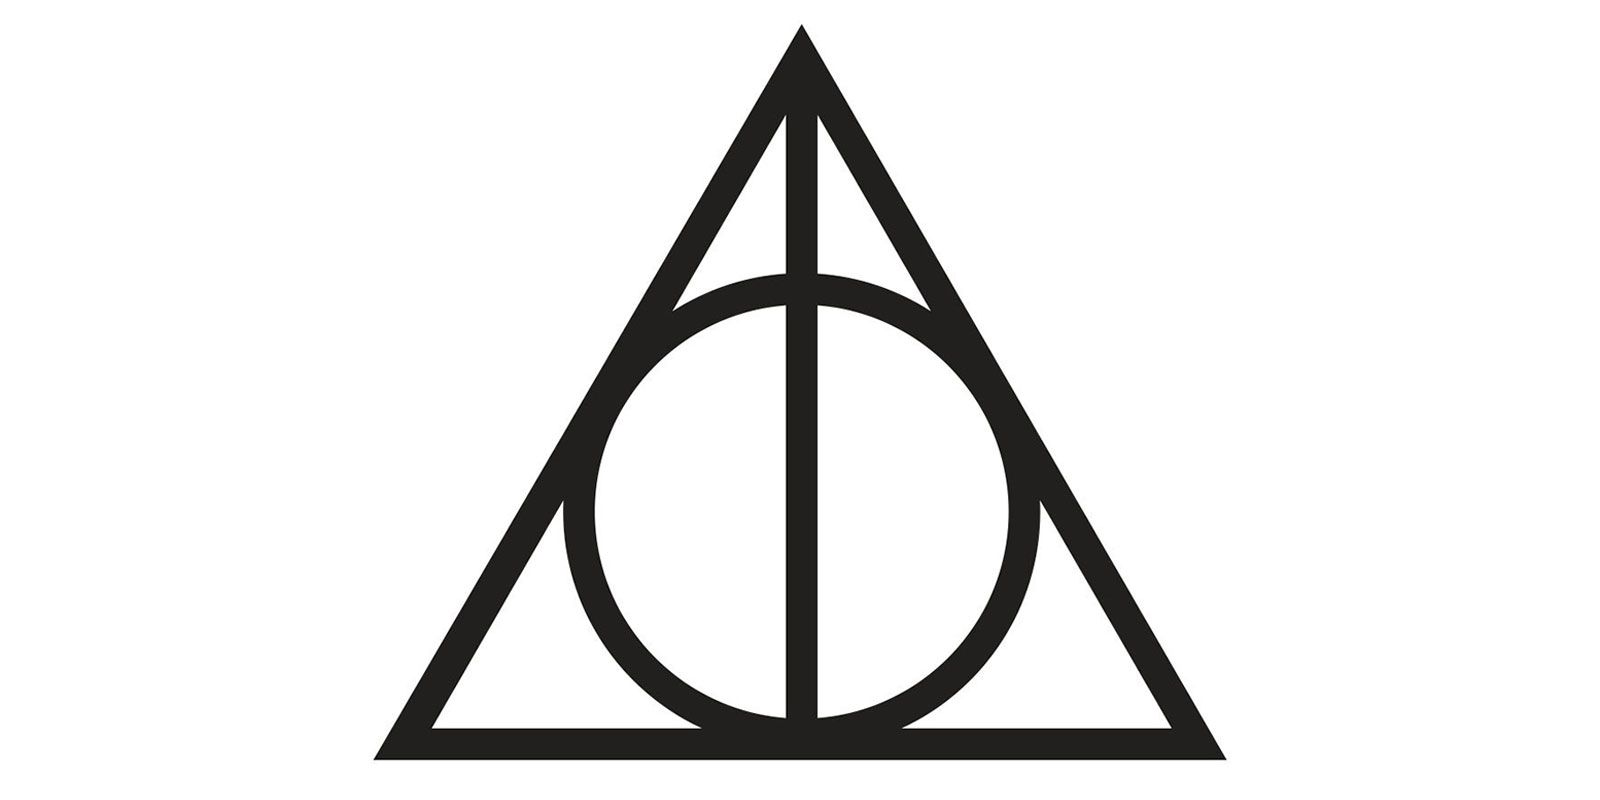 Everything You Need to Know About the Deathly Hallows in the